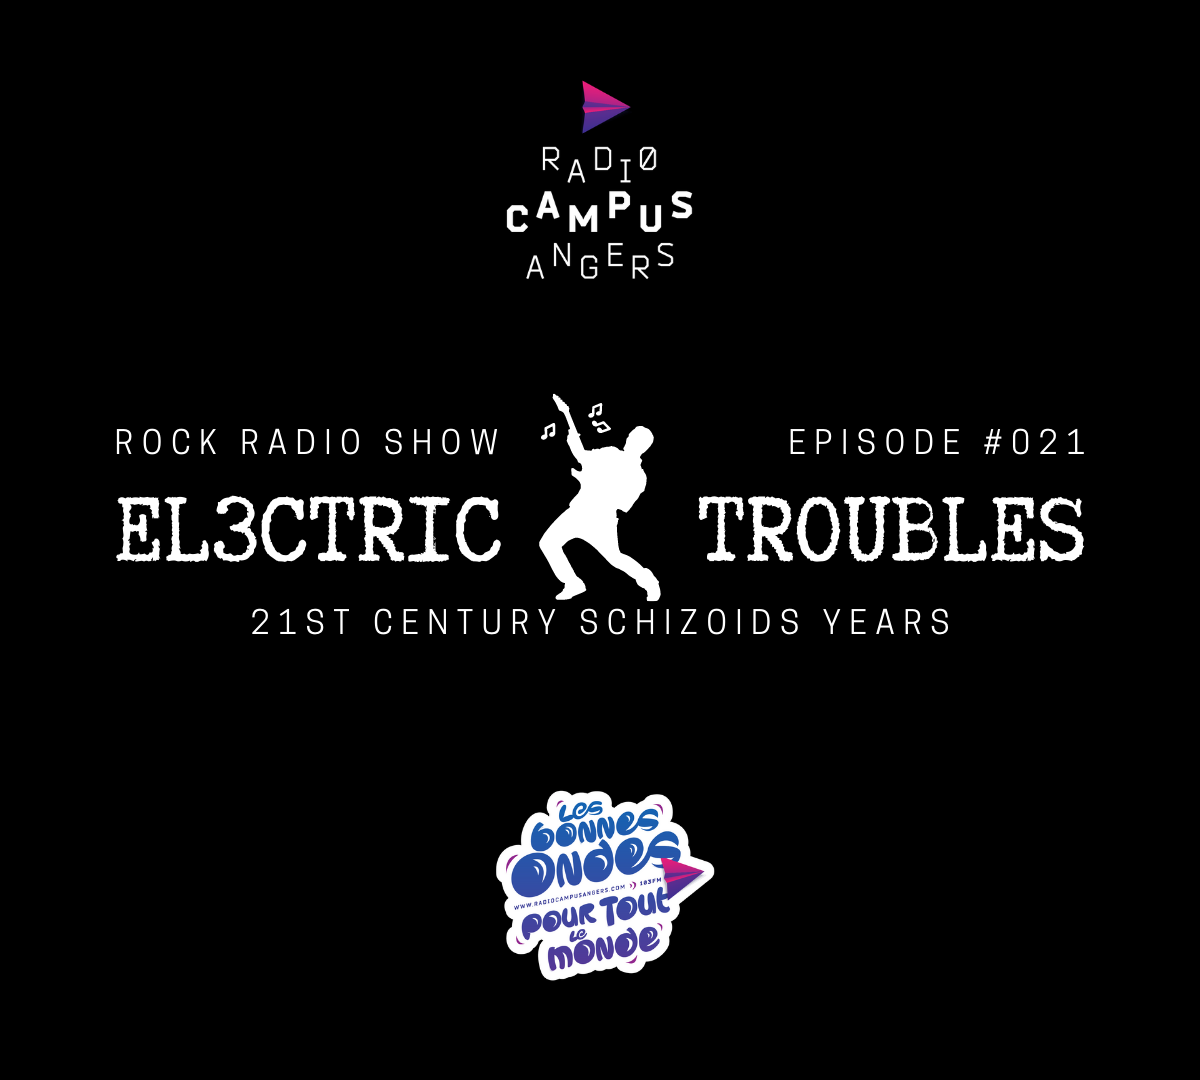 Electric Troubles episode 021